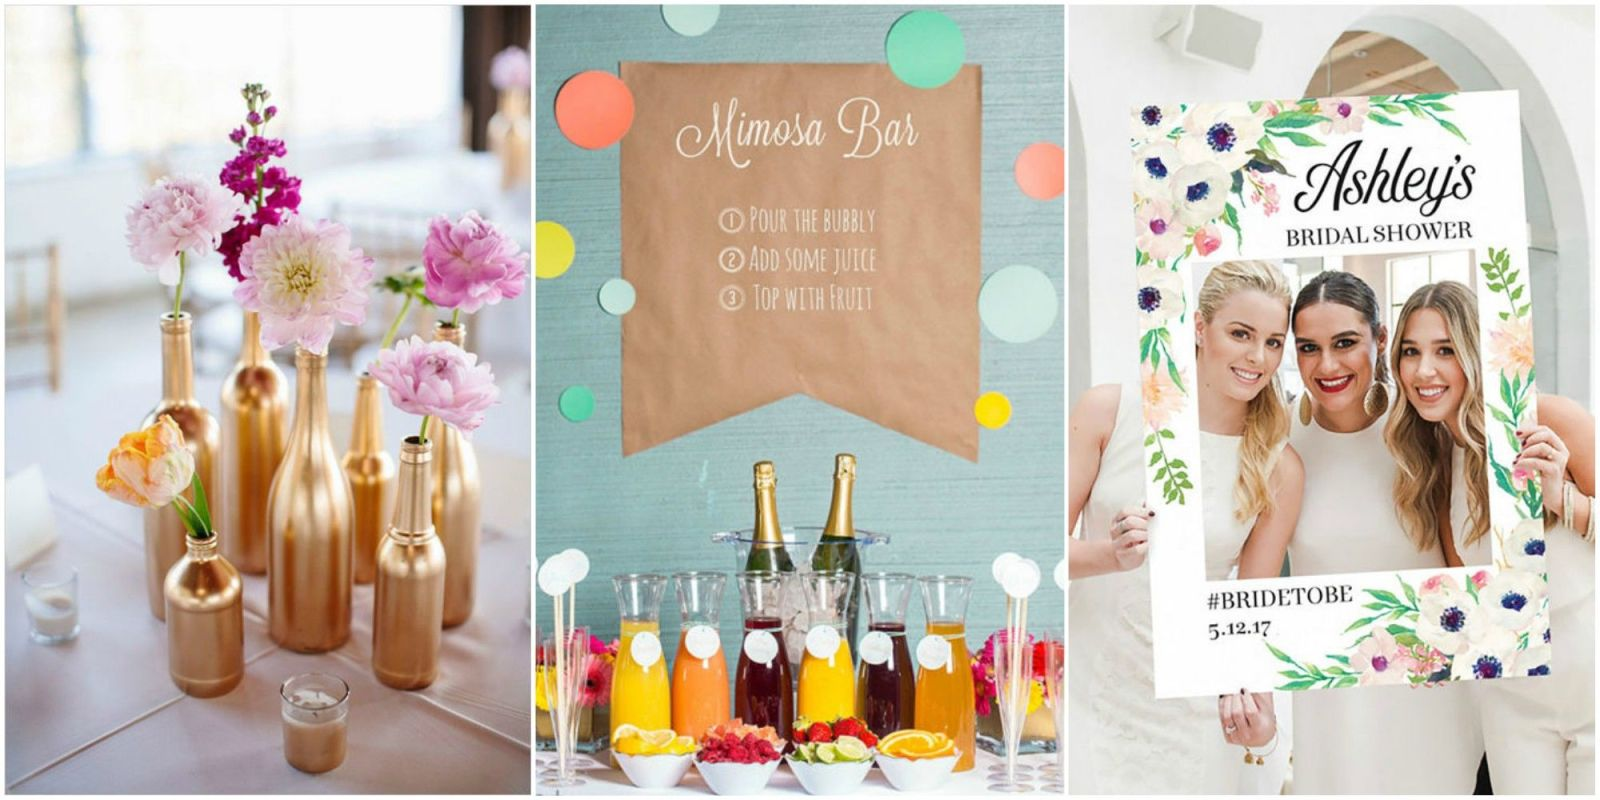 50 best bridal shower ideas fun themes food and decorating